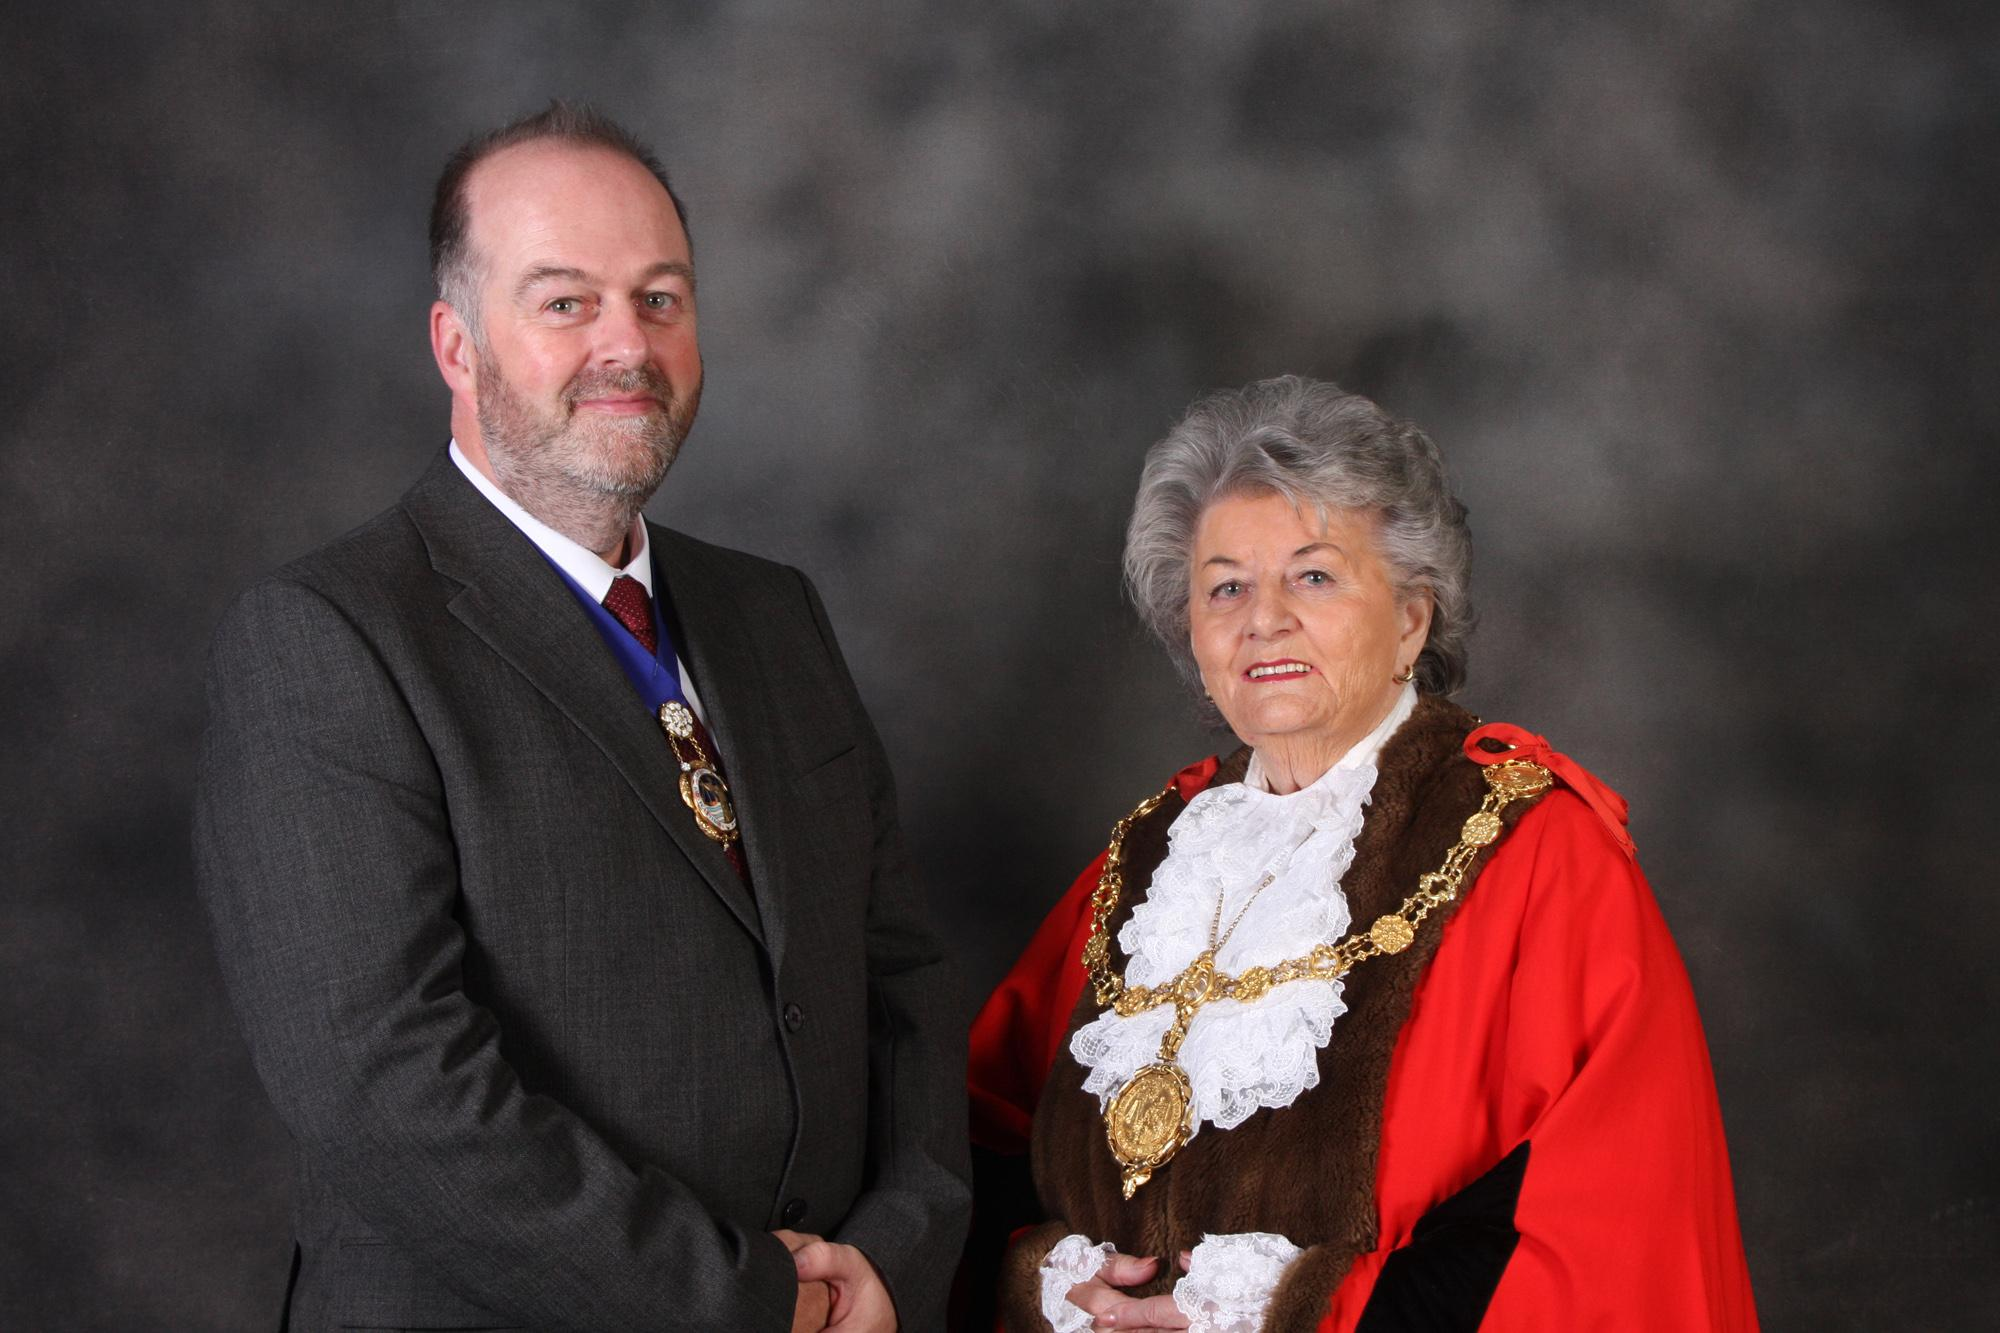 Picture of the Mayor and Consort of the Borough of Scarborough for 2019 to 2020, Cllr Hazel Lynskey and Mr Michael Lynskey